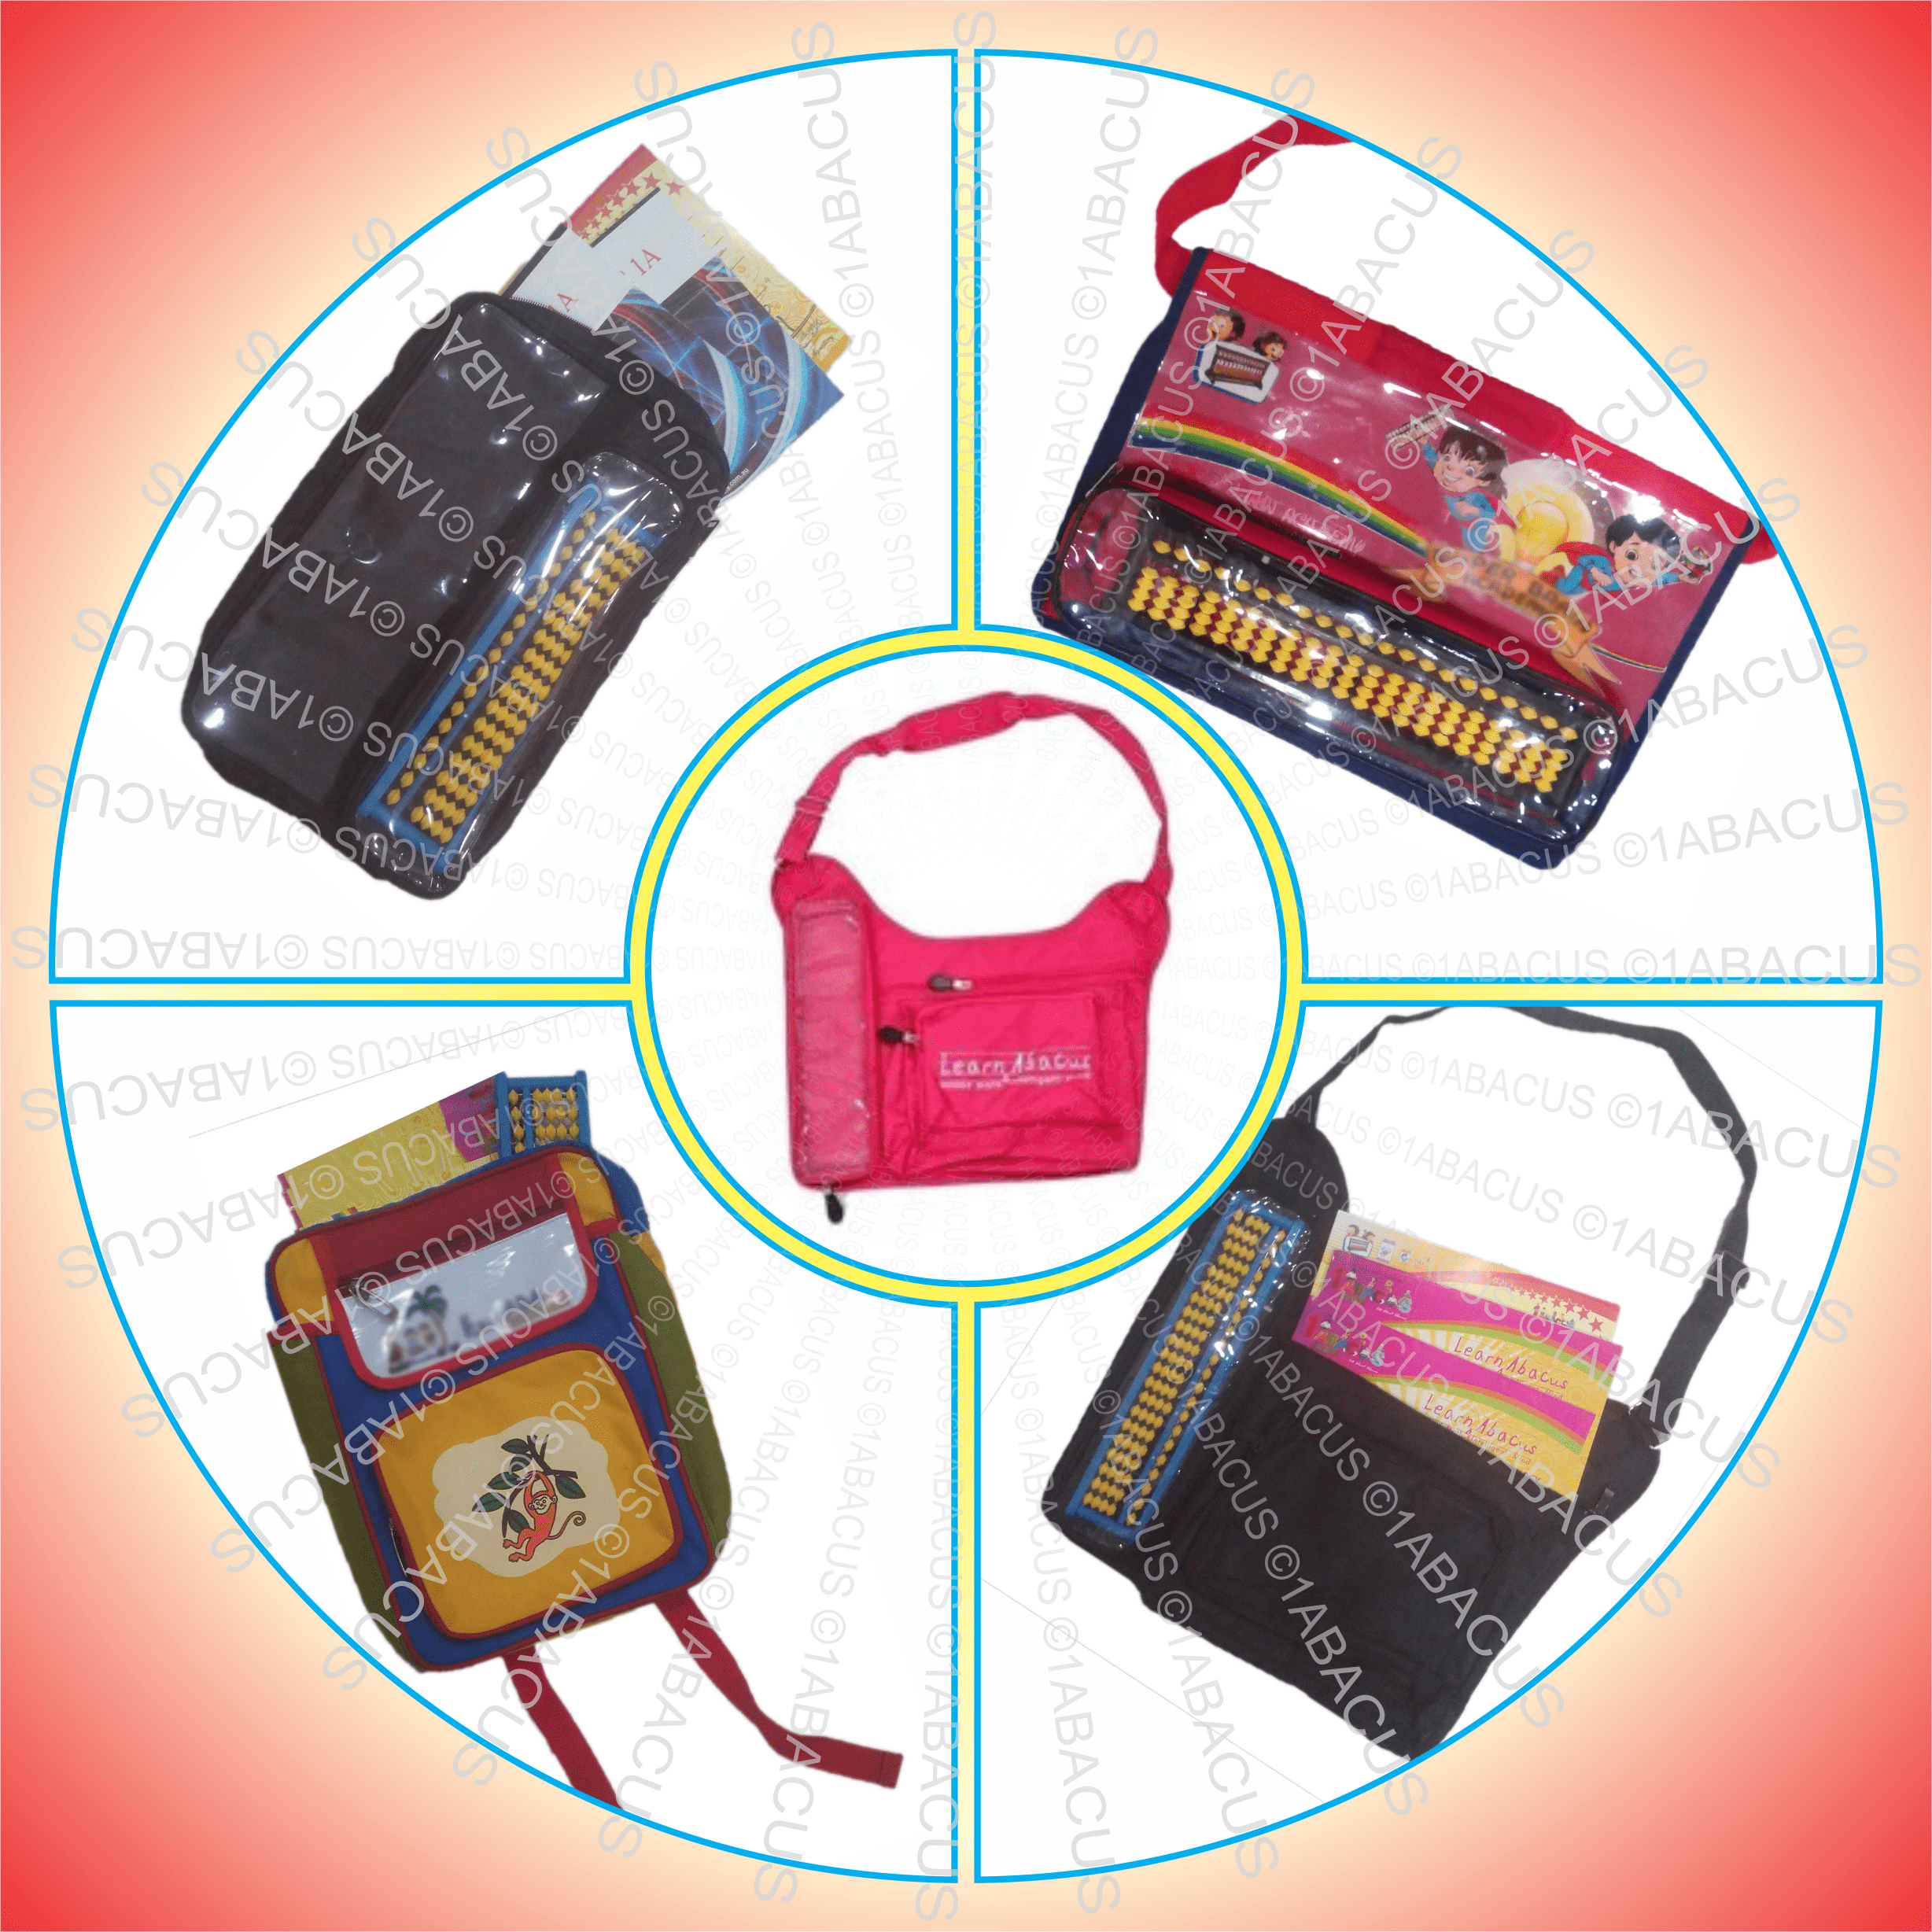 Abacus Bags is an accessory for Abacus teachers and Abacus trainers to facilitate student of Abacus to carry books, assignments and tool to the classes easily and with comfort. Our Abacus Bags are just those bags which are right for Abacus classes purposes. We help you buy the Abacus bags with your Logo and address on it. We also accept order under small quantities of 100,200 or 300 bags even.